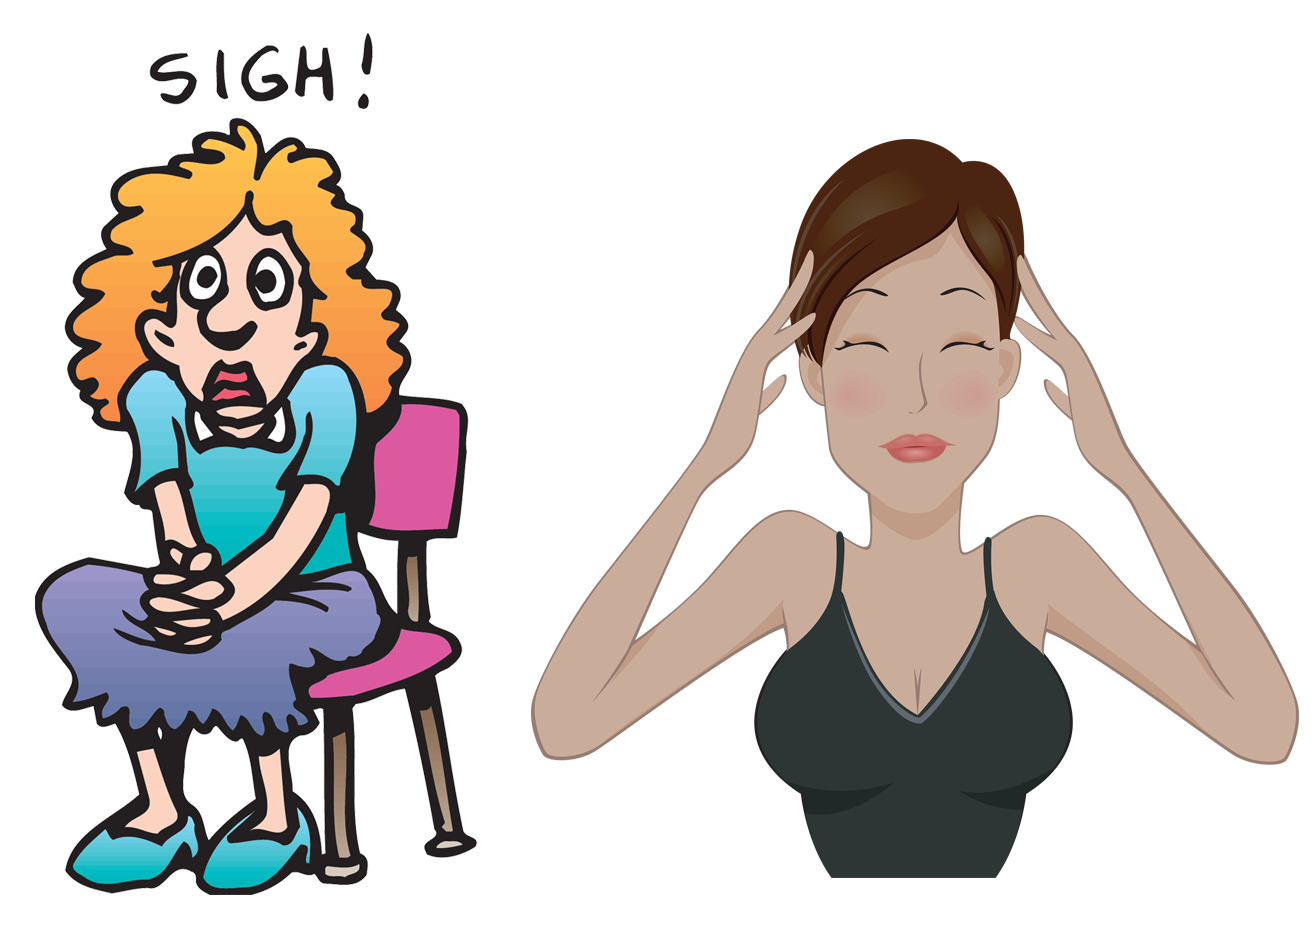 Free anxiety cliparts download. Worry clipart girl stress